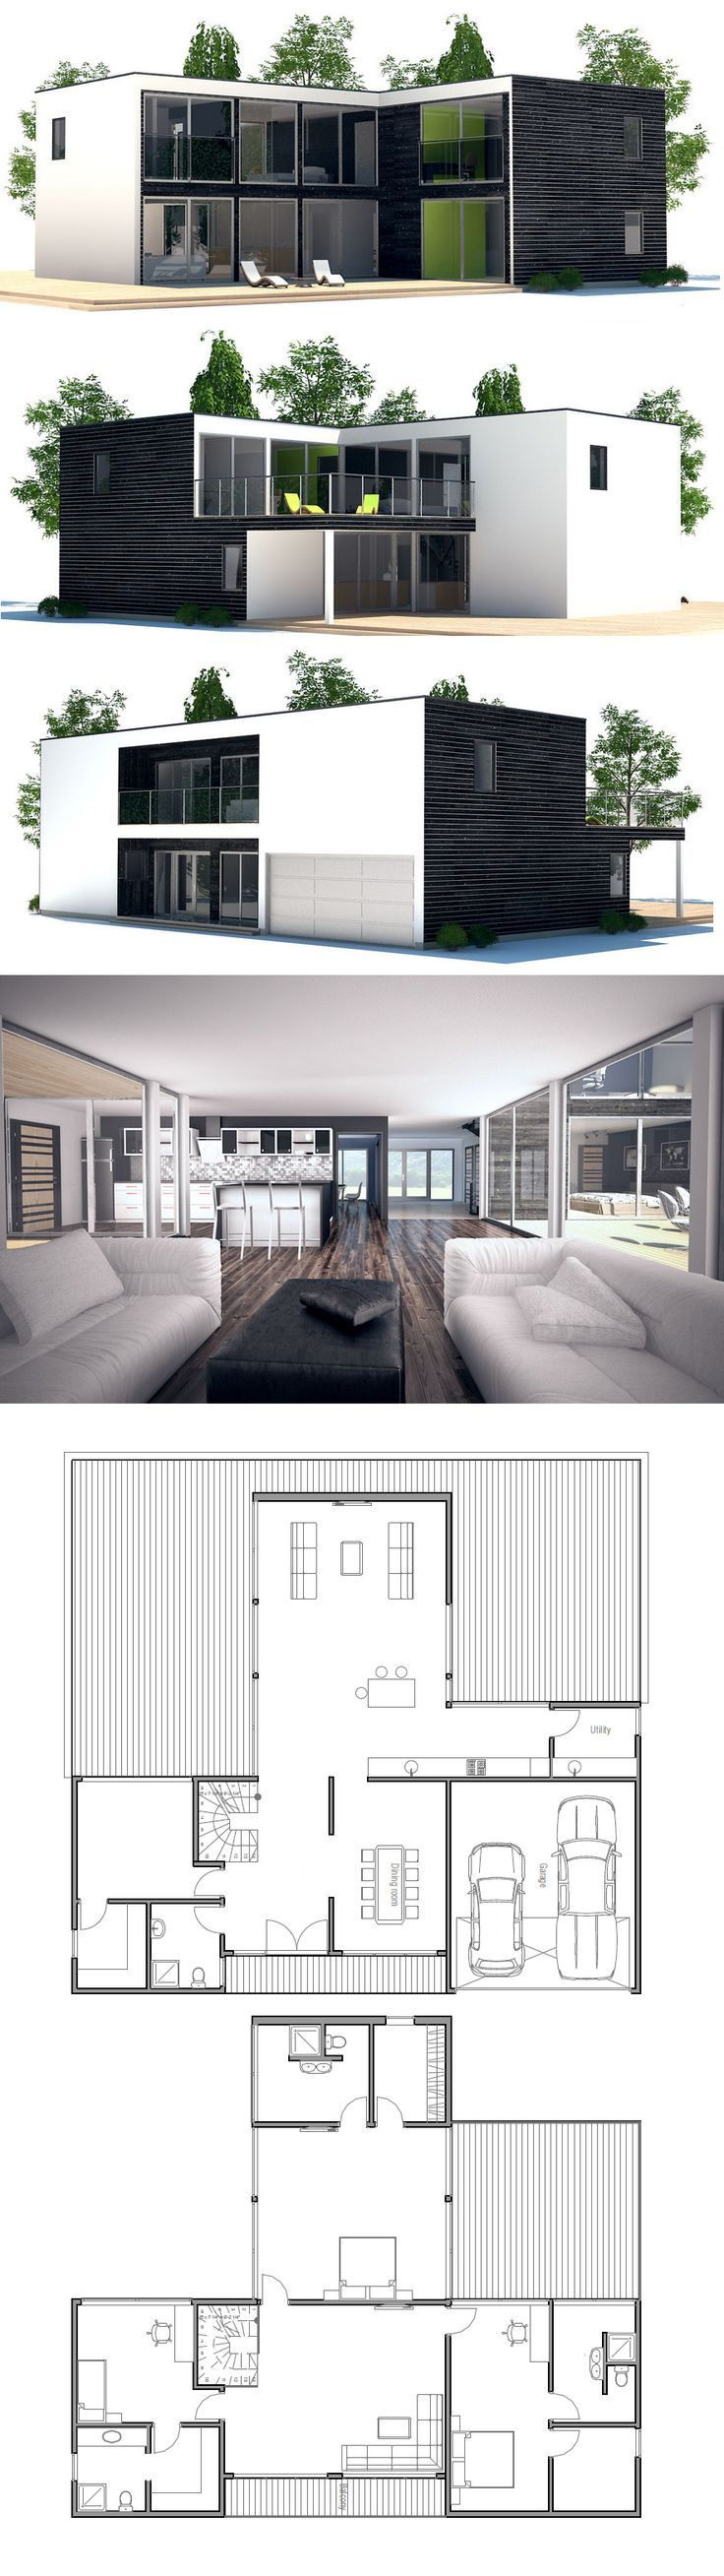 master bedroom design plans. I Could Make The Garage Into A Master Bedroom. It Would Definitely Be More Wheelchair Friendly - Who Else Wants Simple Step-By-Step Plans To Design Bedroom